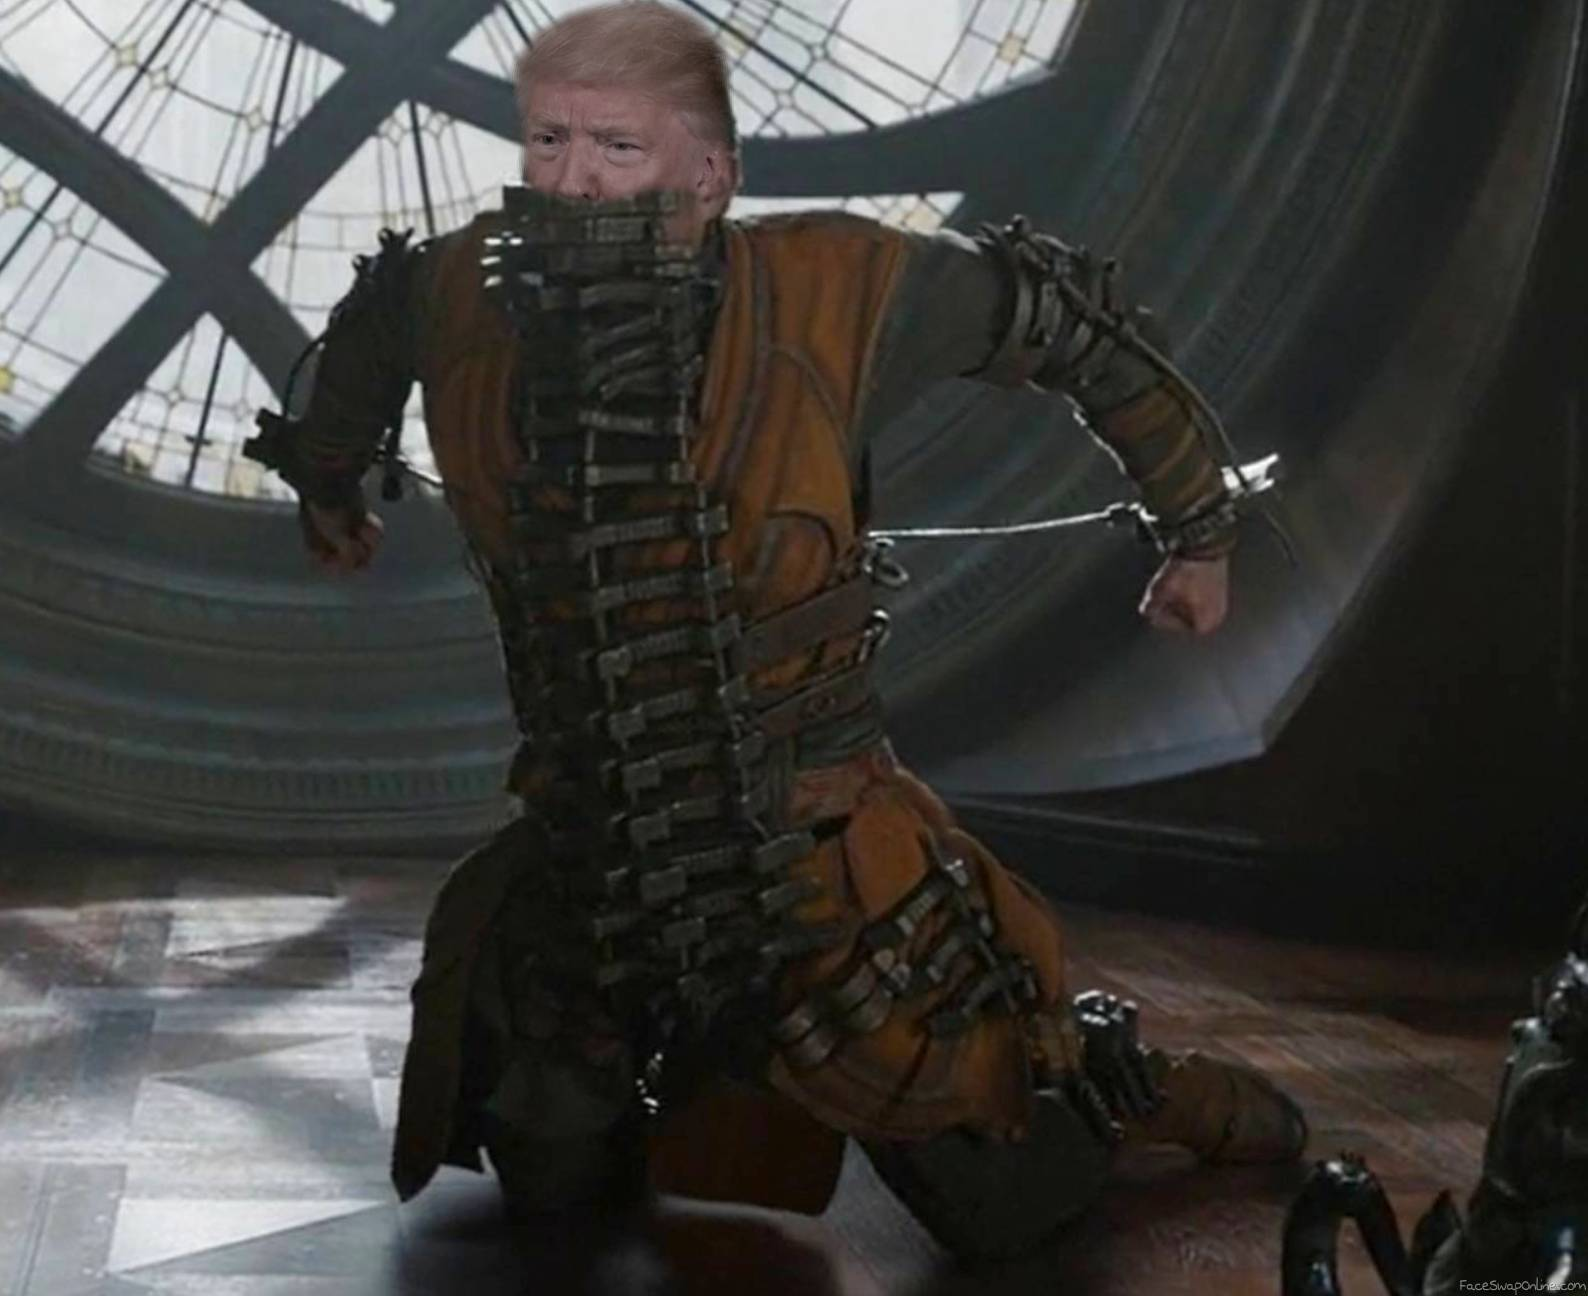 Donald Kaeclilius chained